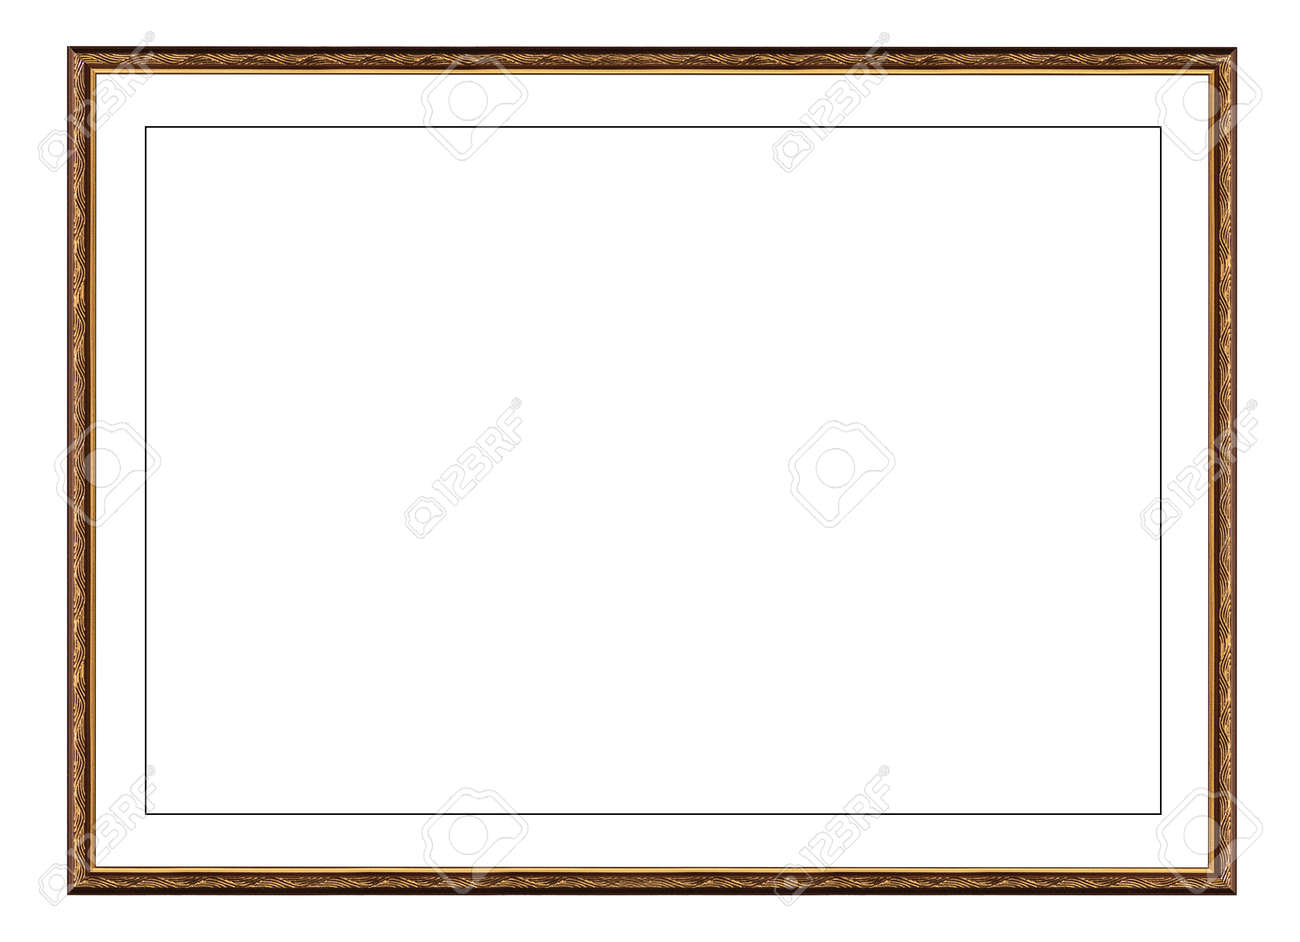 old gold wooden frame for picture or photo, frame for a mirror isolated on white background. With clipping path - 170242739